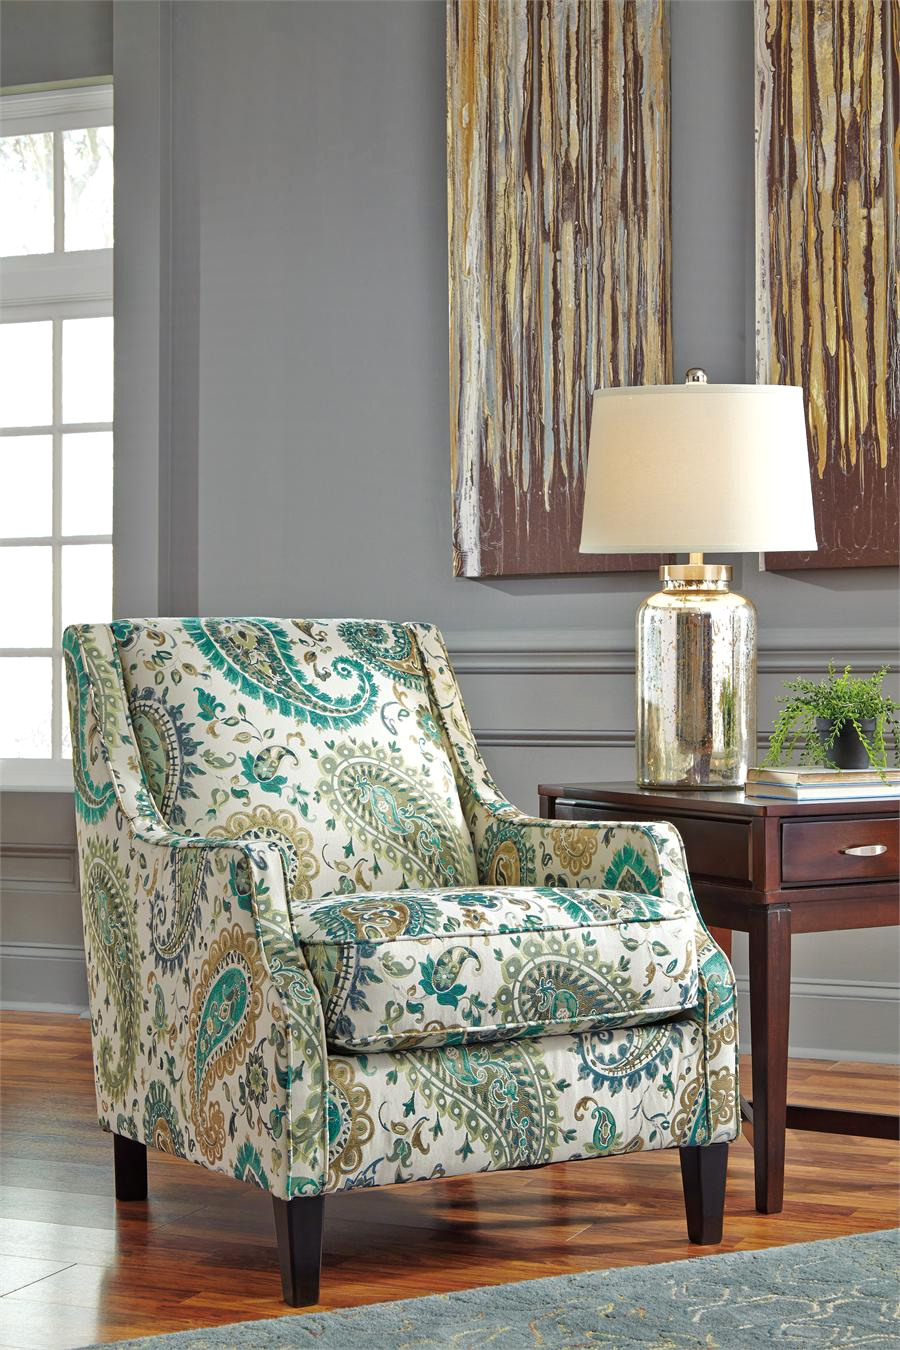 wonderful worldwide homefurnishings piece accent chair and table beautiful best paisley design ideas home furniture set with ave six farmhouse nightstand pieces for family room